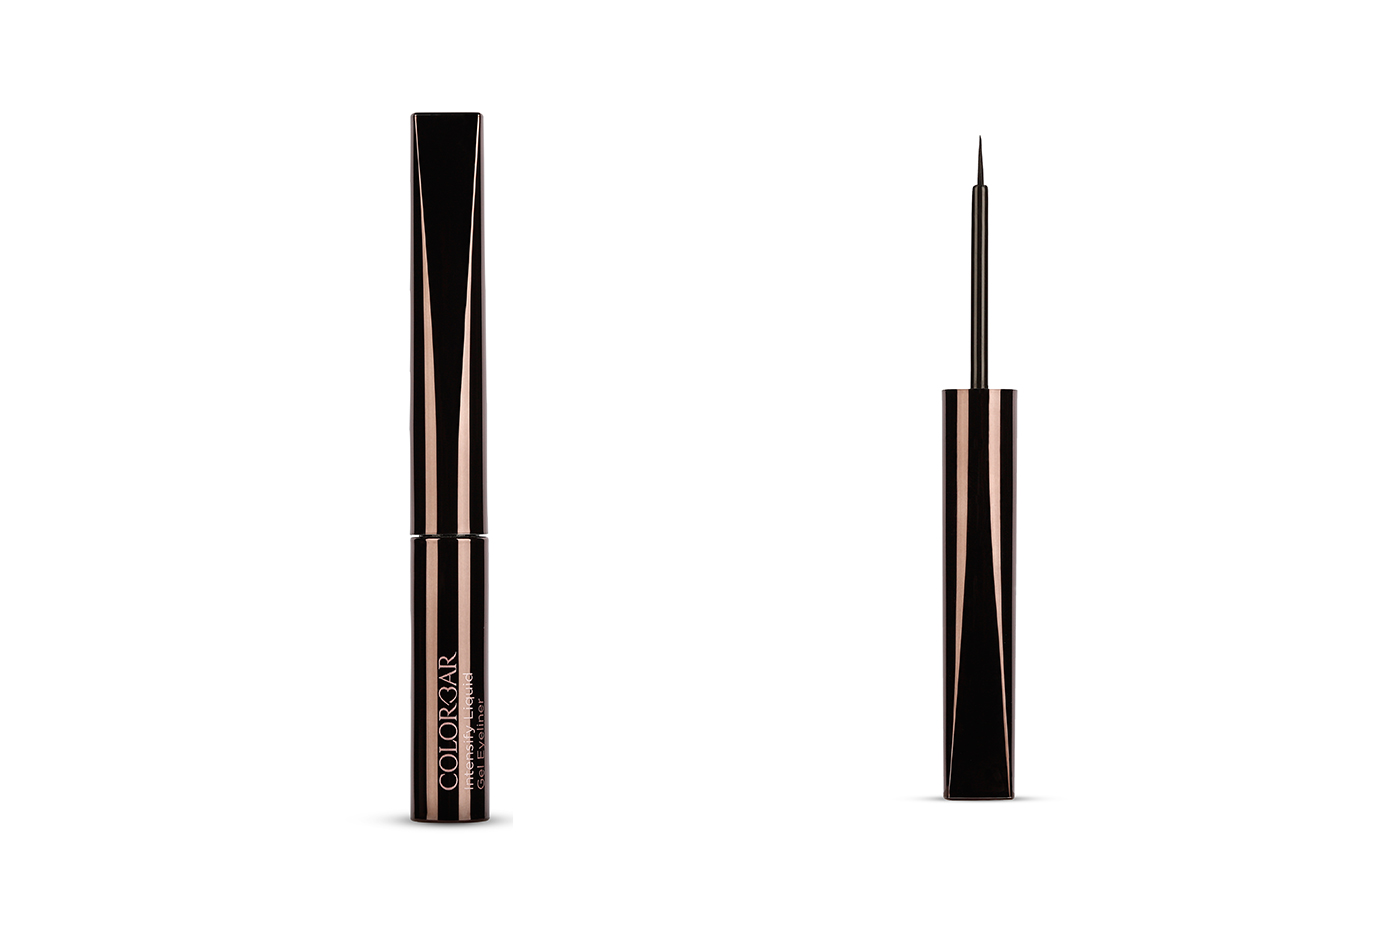 Colorbar Cosmetics eyeliner for intensified strokes